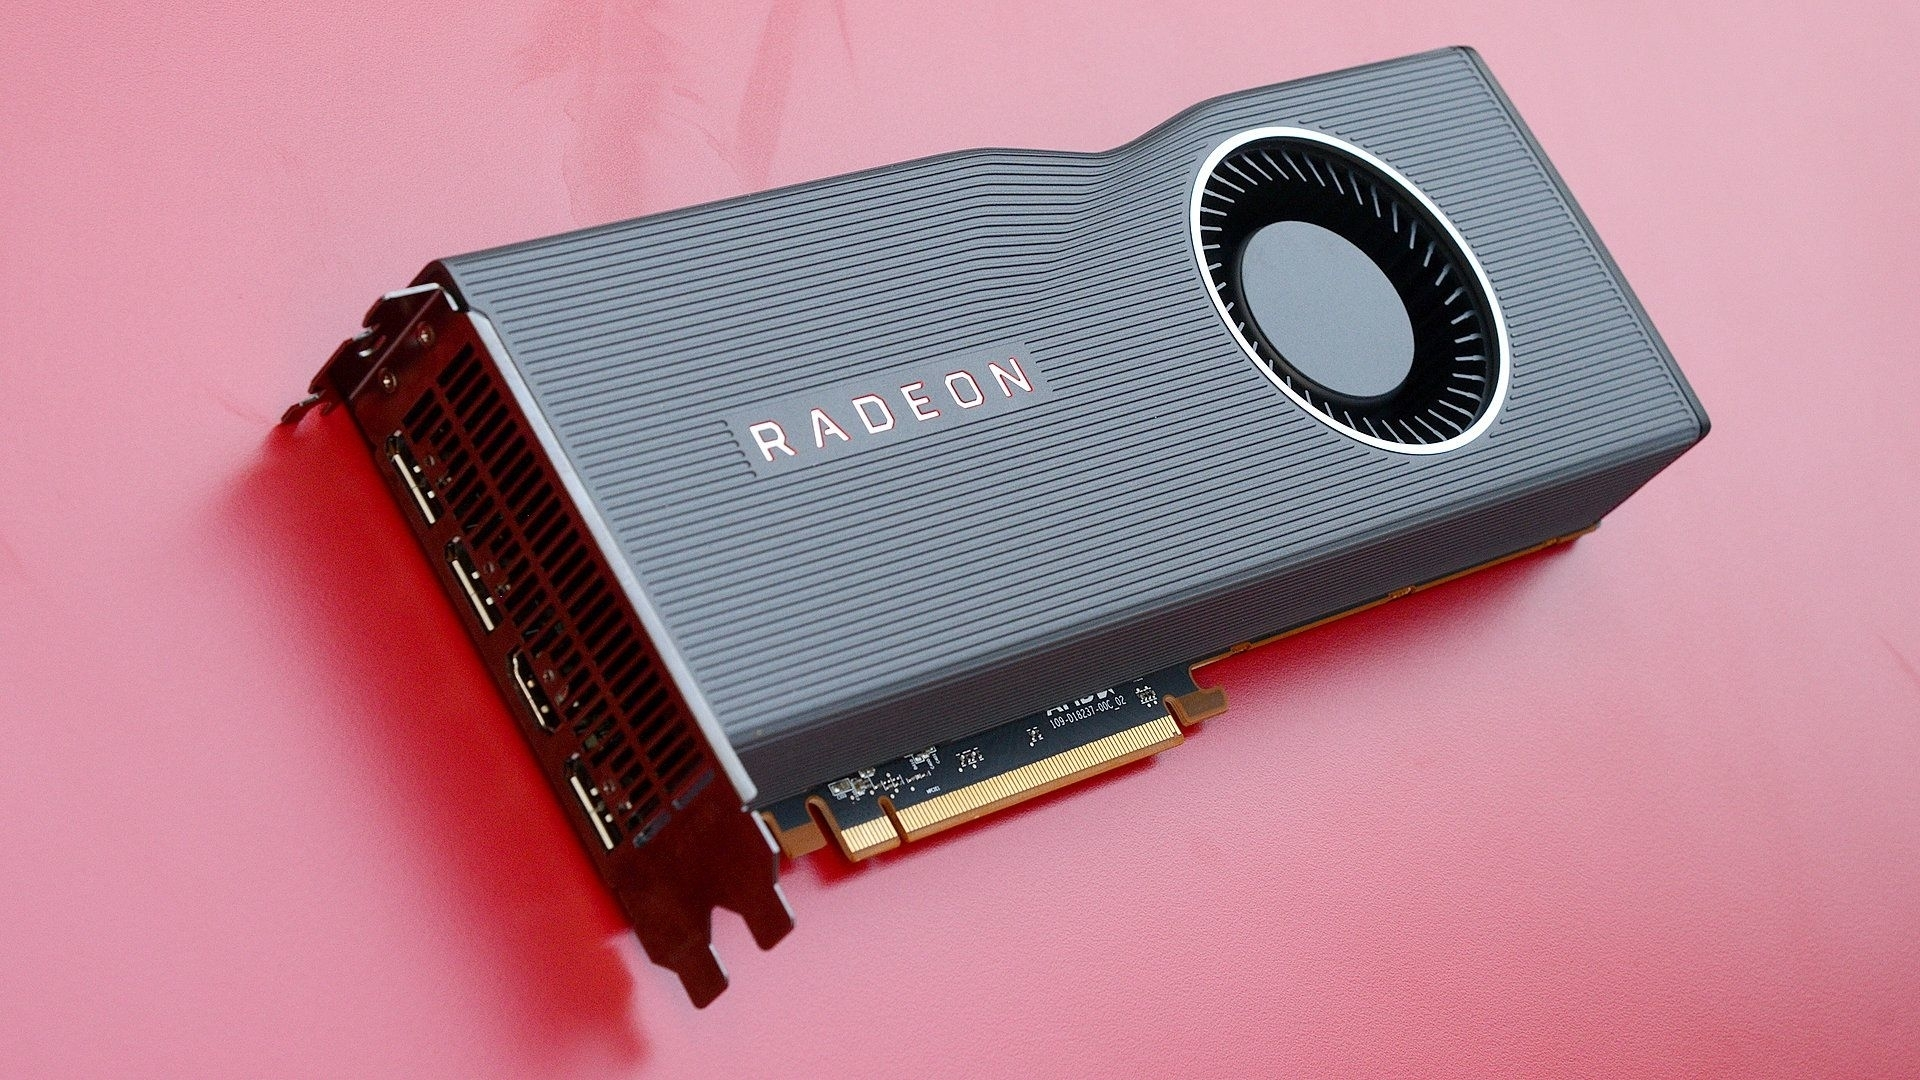 Linux 5 3 provides drivers for AMD's new graphics circuit